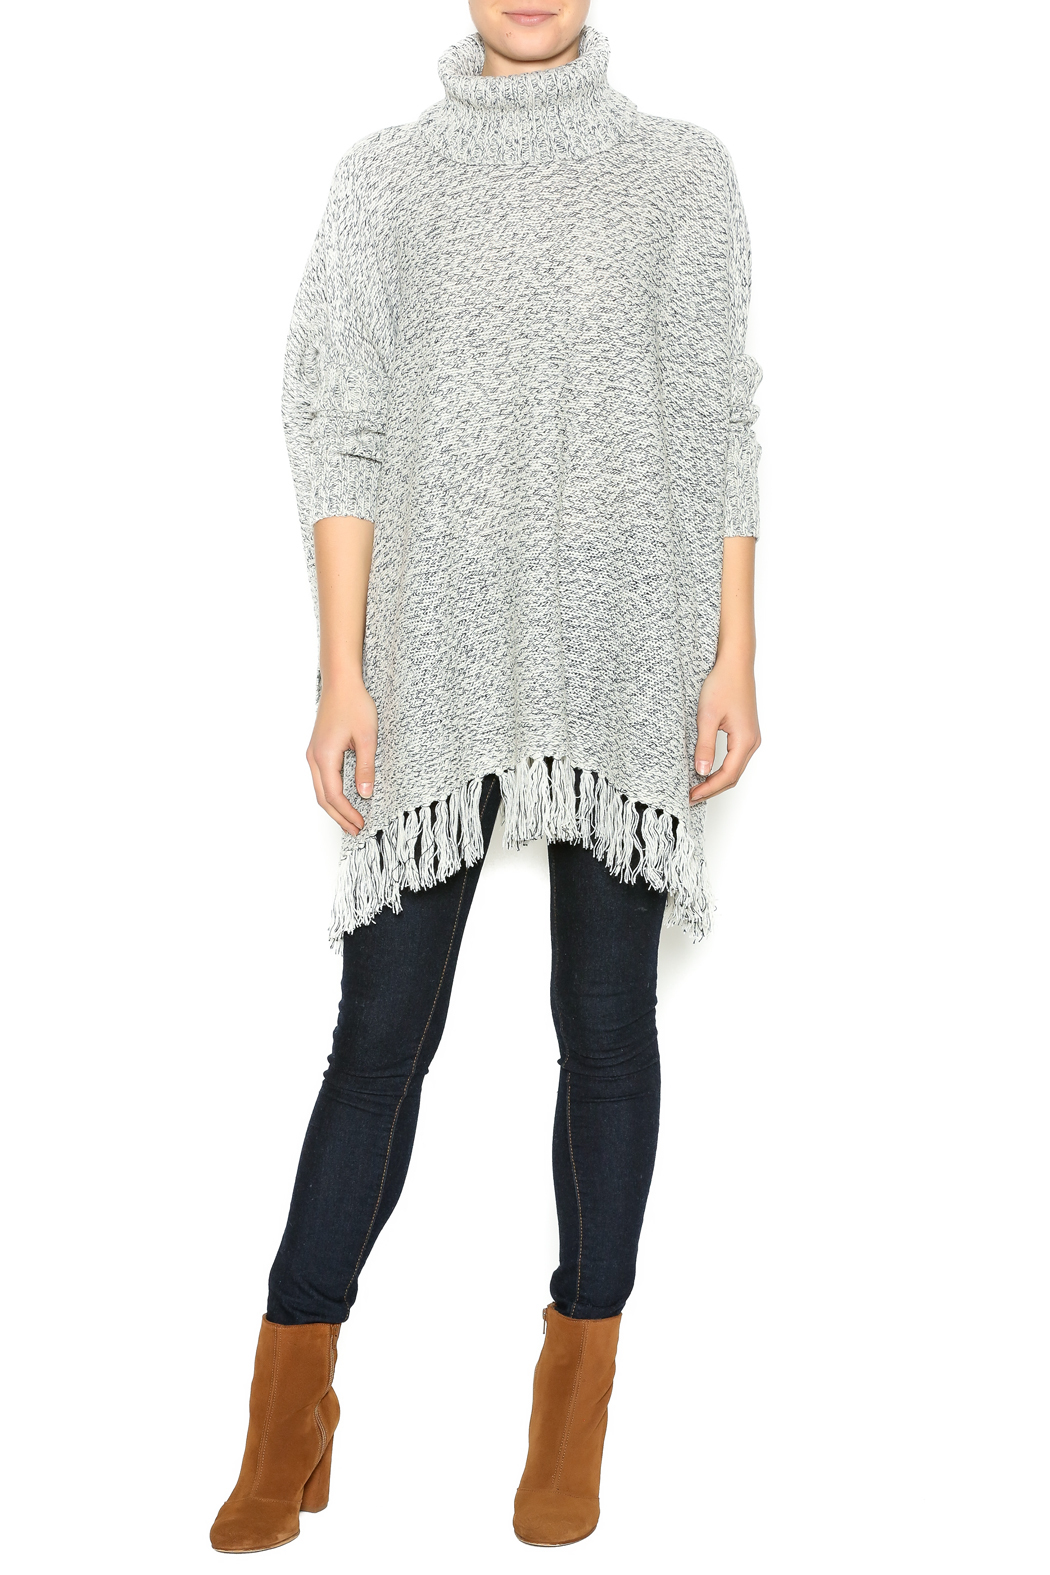 fe9ced5d4cd RD Style Turtleneck Fringe Poncho from Ohio by Lou Lou s — Shoptiques